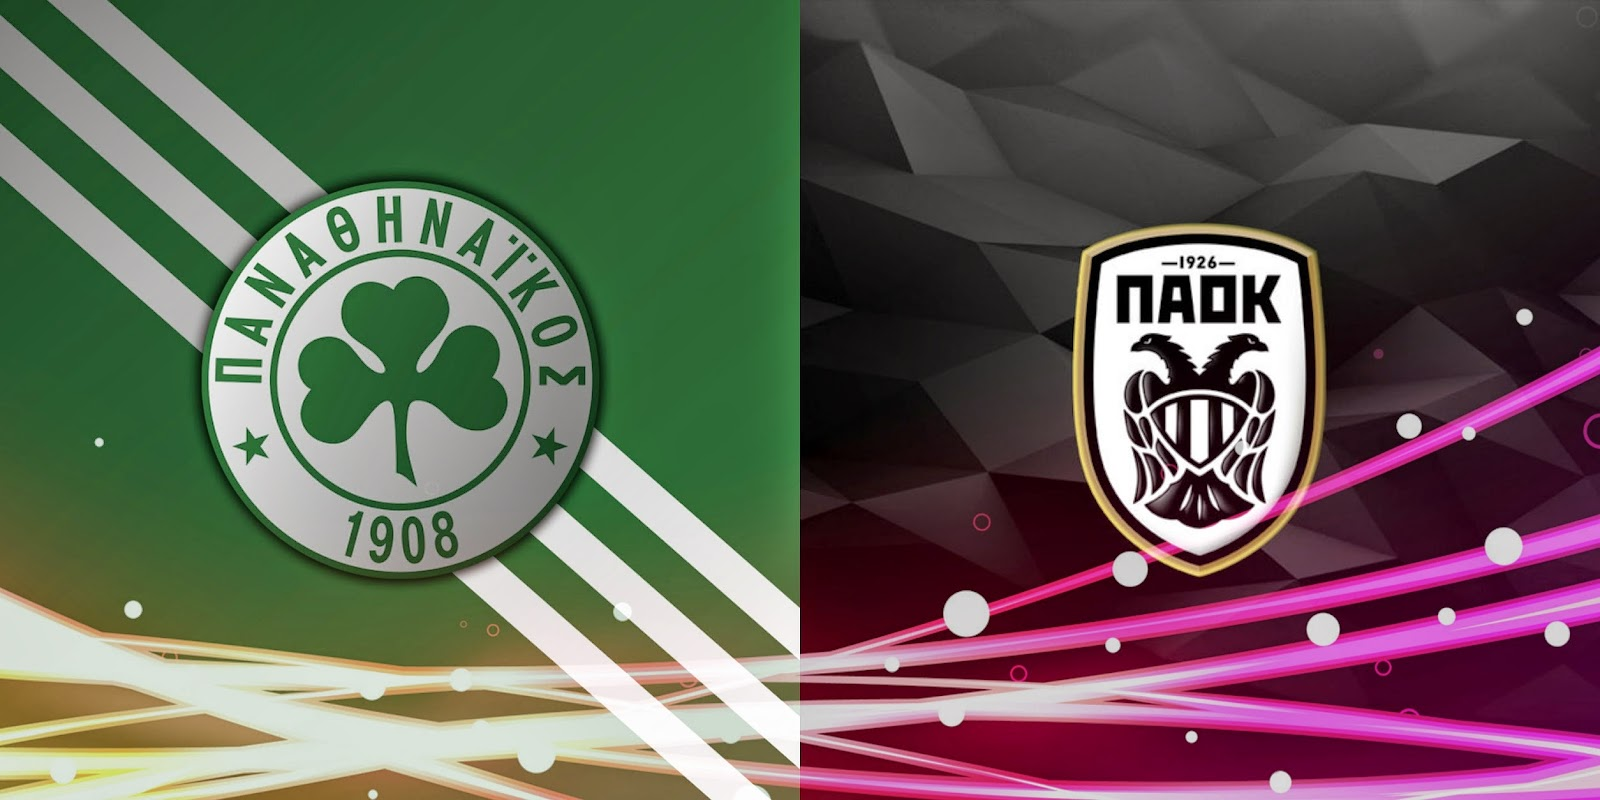 Panathinaikos - PAOK Live Streaming